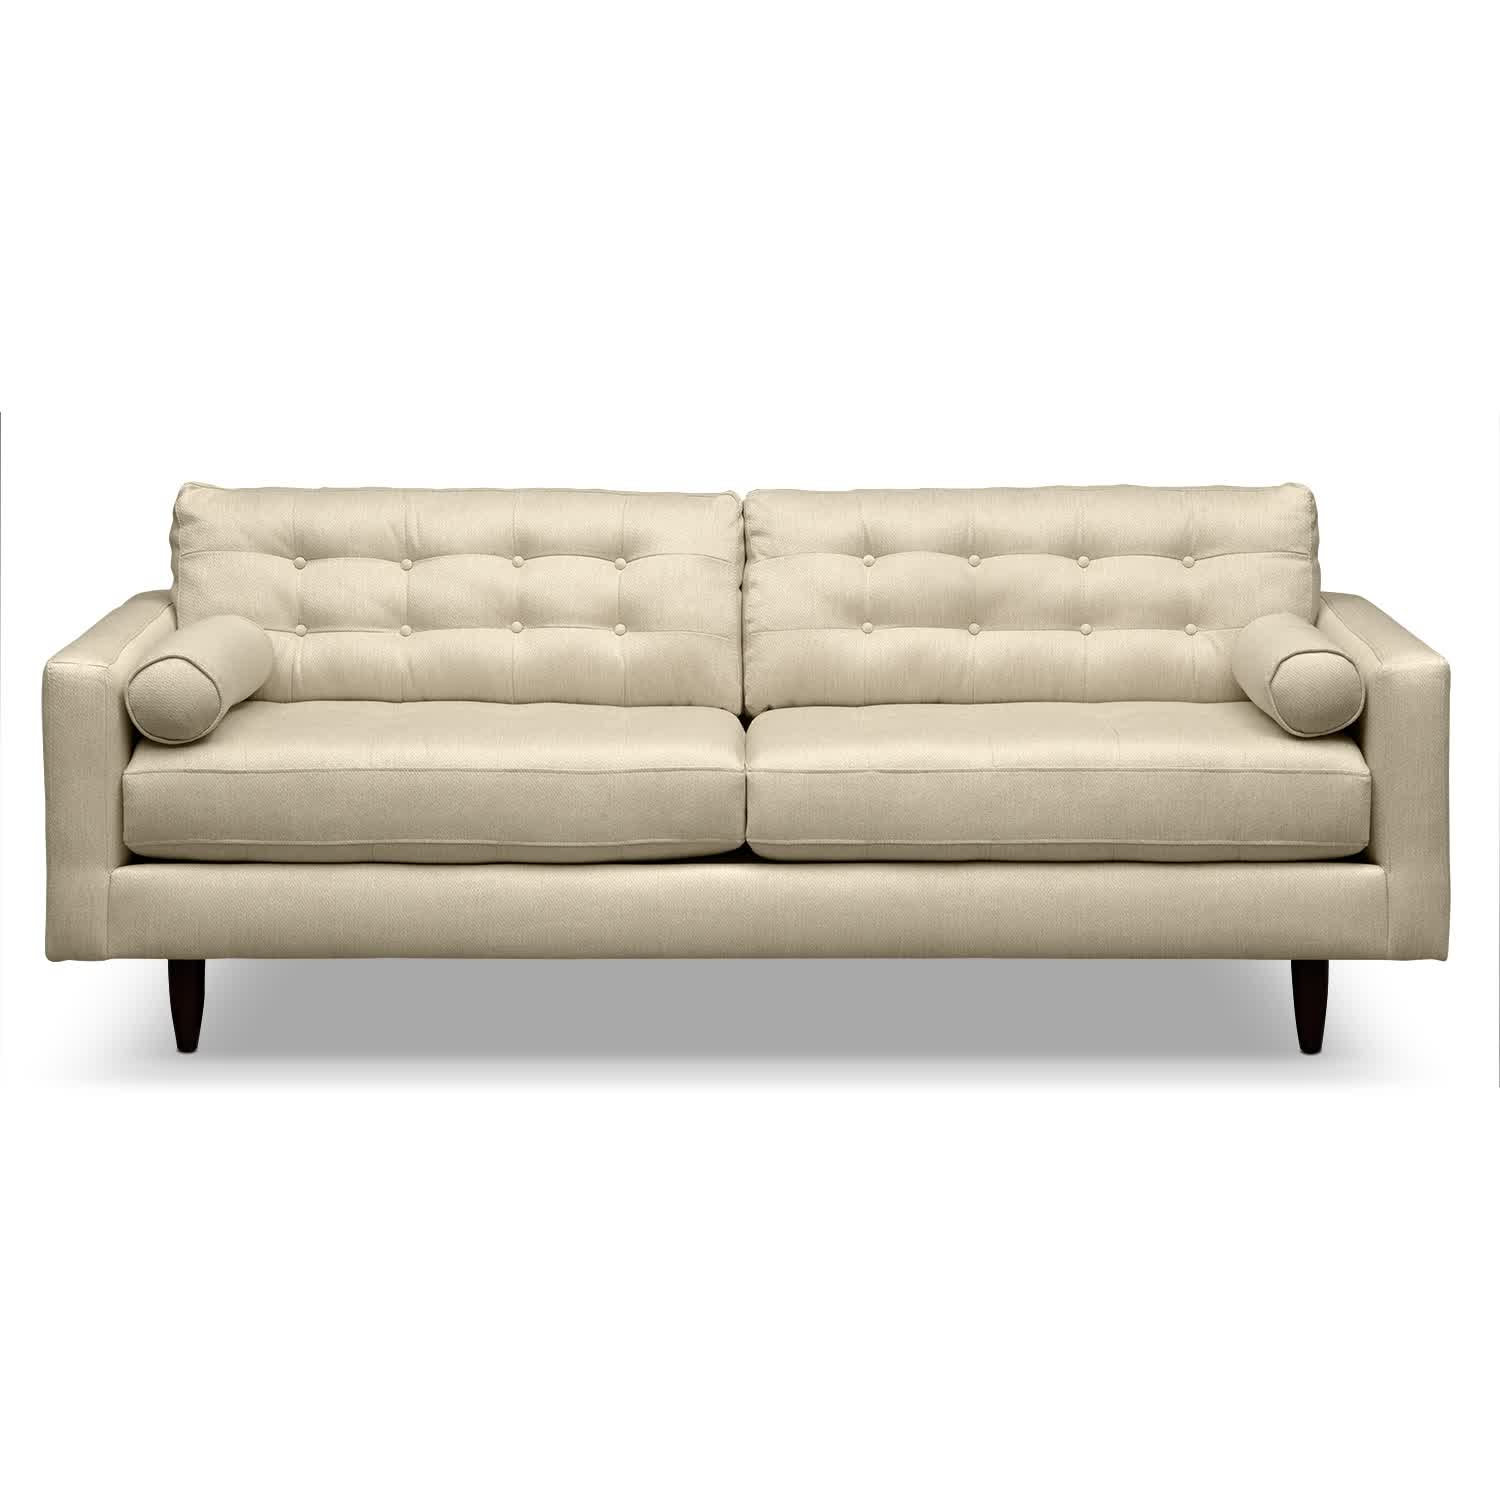 white tufted leather sofa recliner covers ideas oz visuals design image of modern